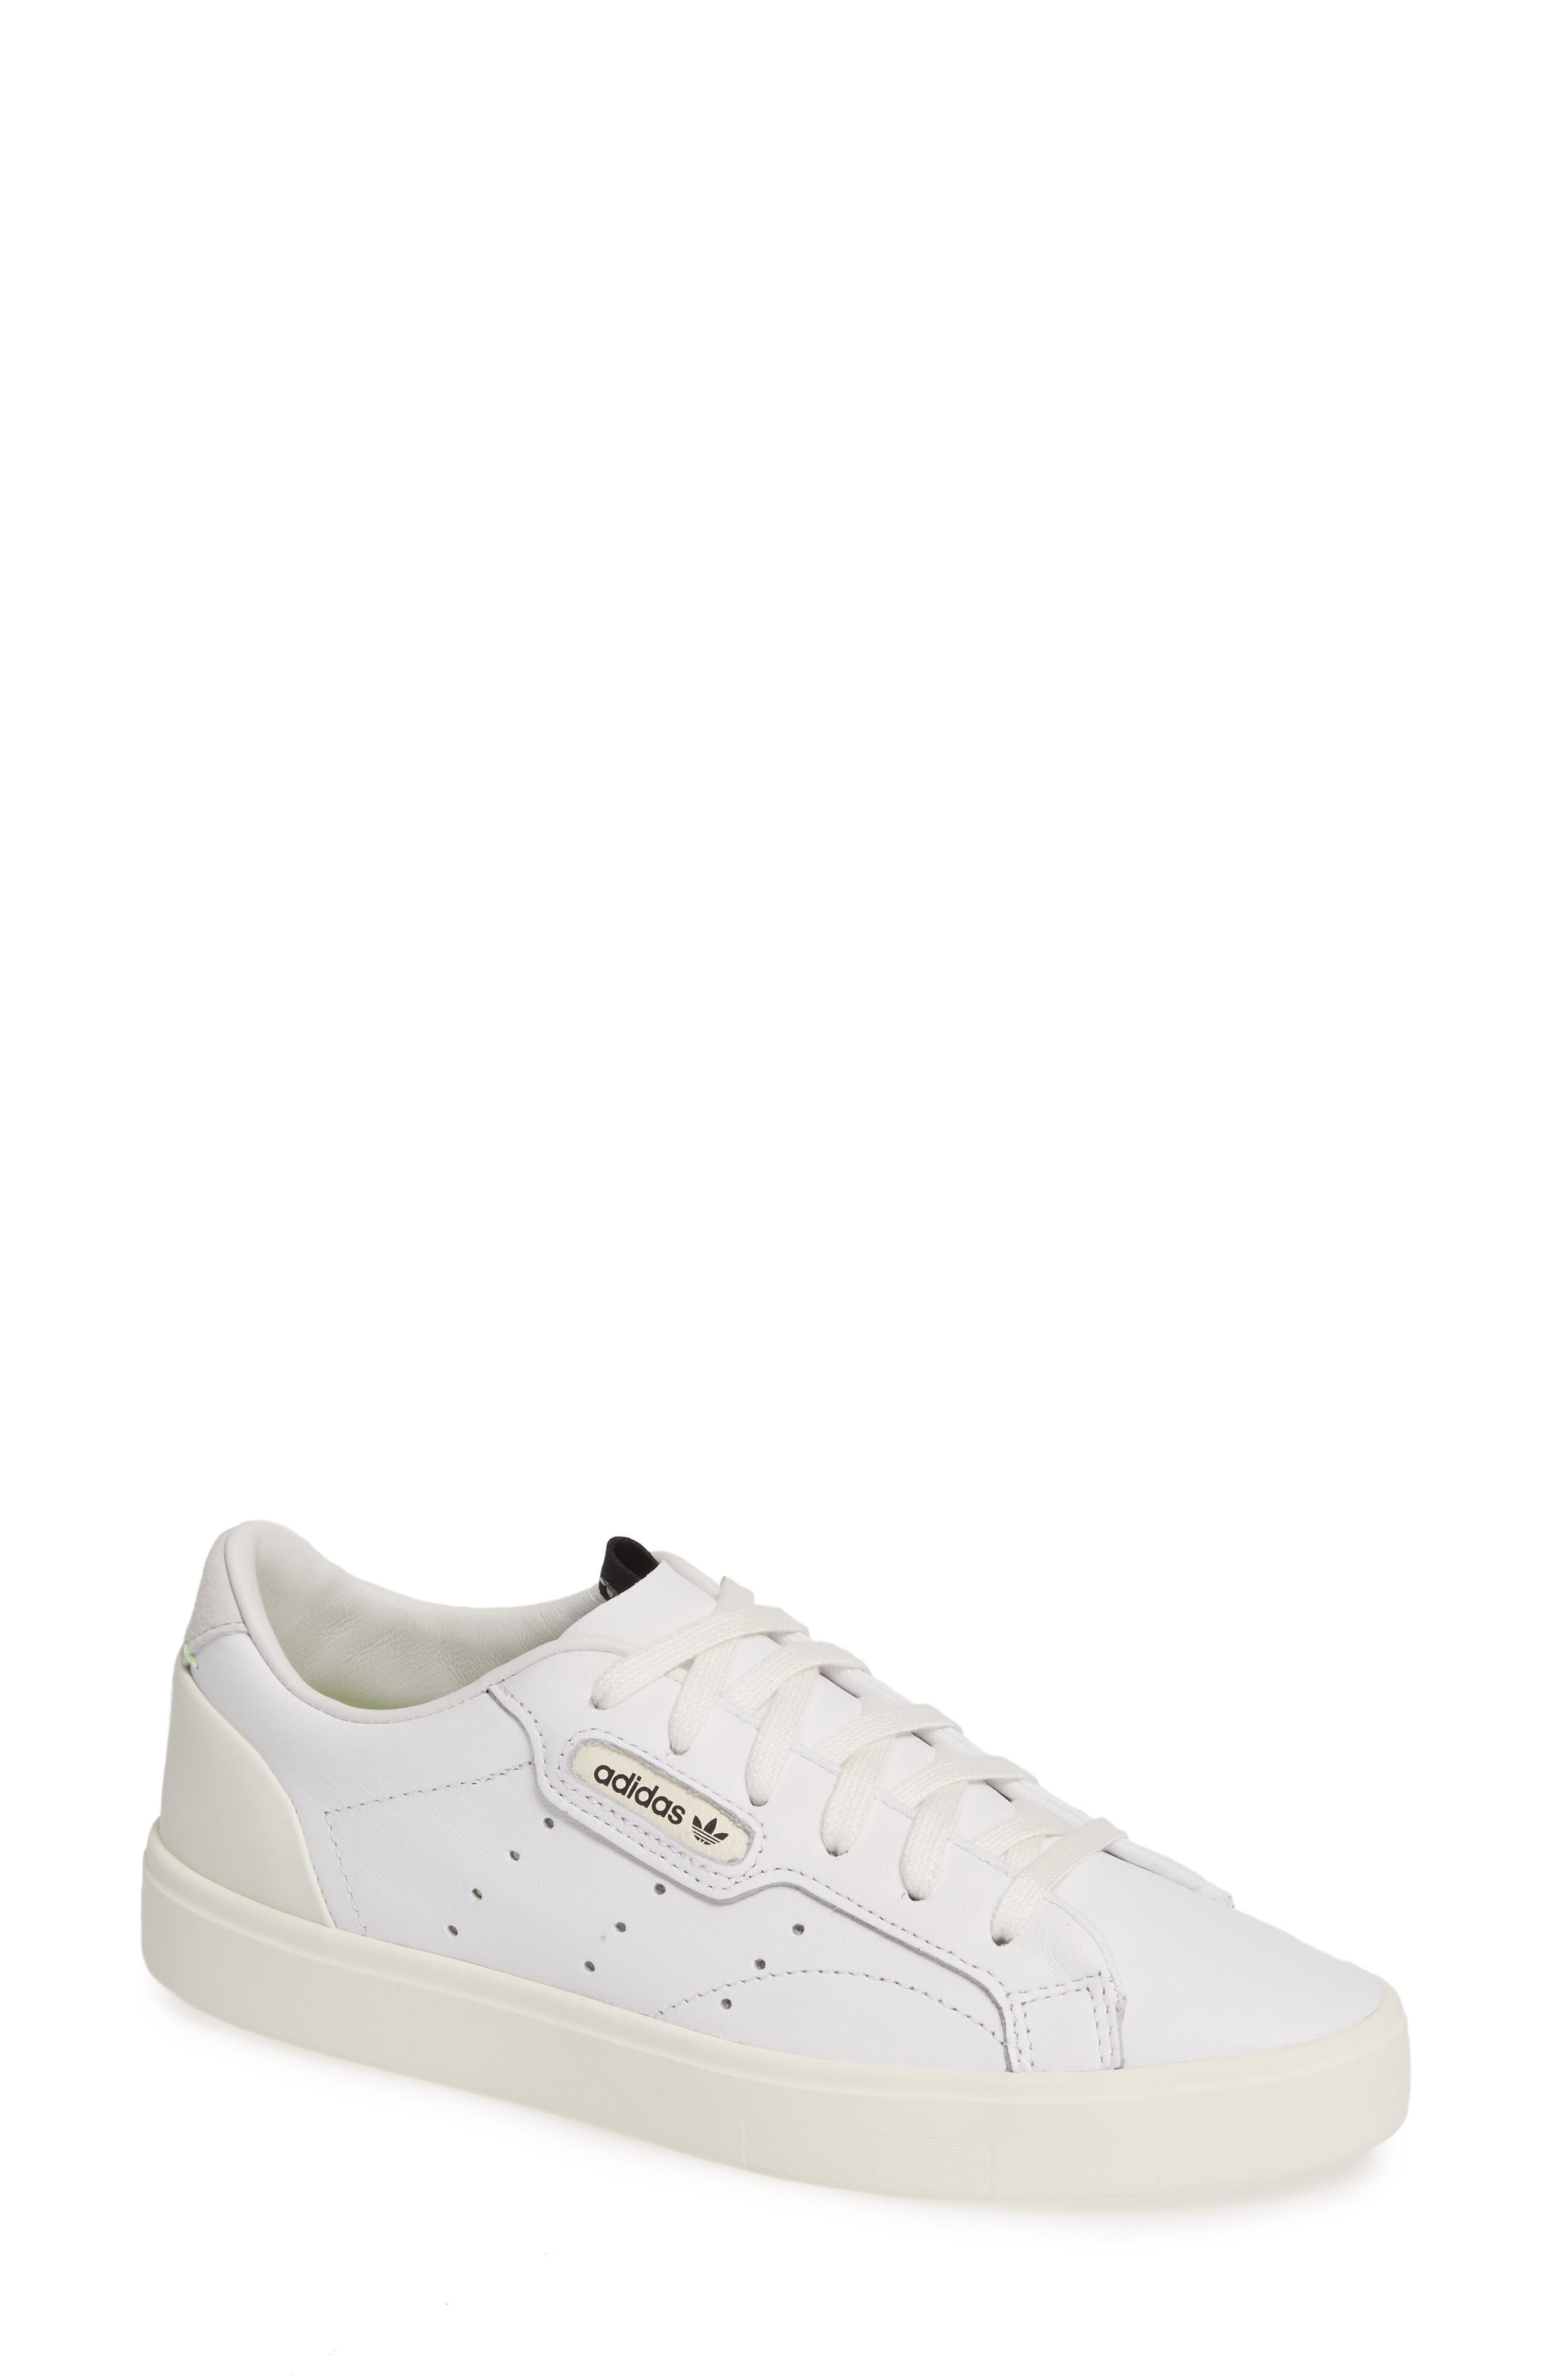 ADIDAS Sleek Leather Sneaker, Main, color, WHITE/ OFF WHITE/ CRYSTAL